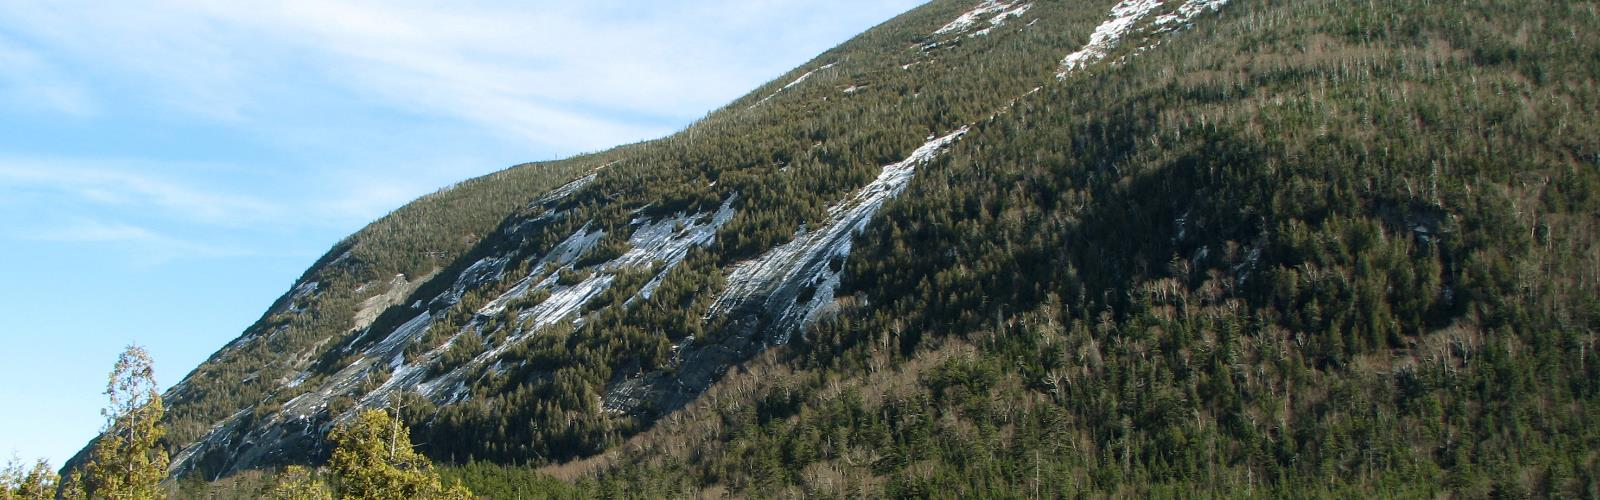 Mount Colden, New York - Hiking  outdoor sky grass tree mountain snow nature hill plant slope hillside highland